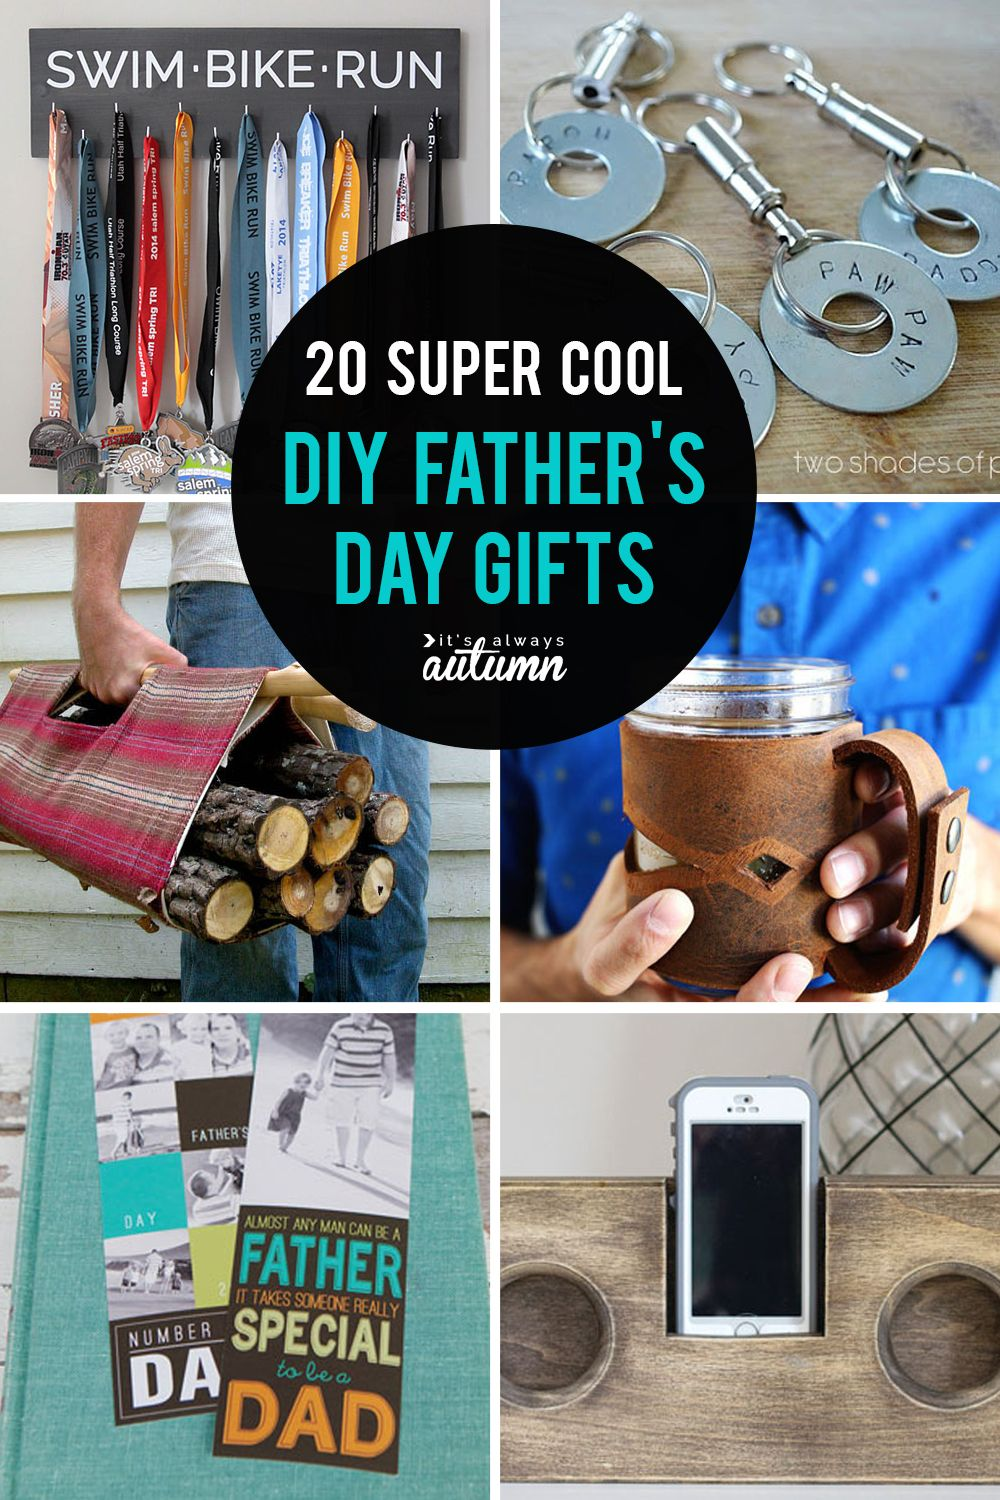 20 Super Cool Handmade Father S Day Gifts Diy For Dad Homemade Gifts For Dad Handmade Father S Day Gifts Father S Day Diy